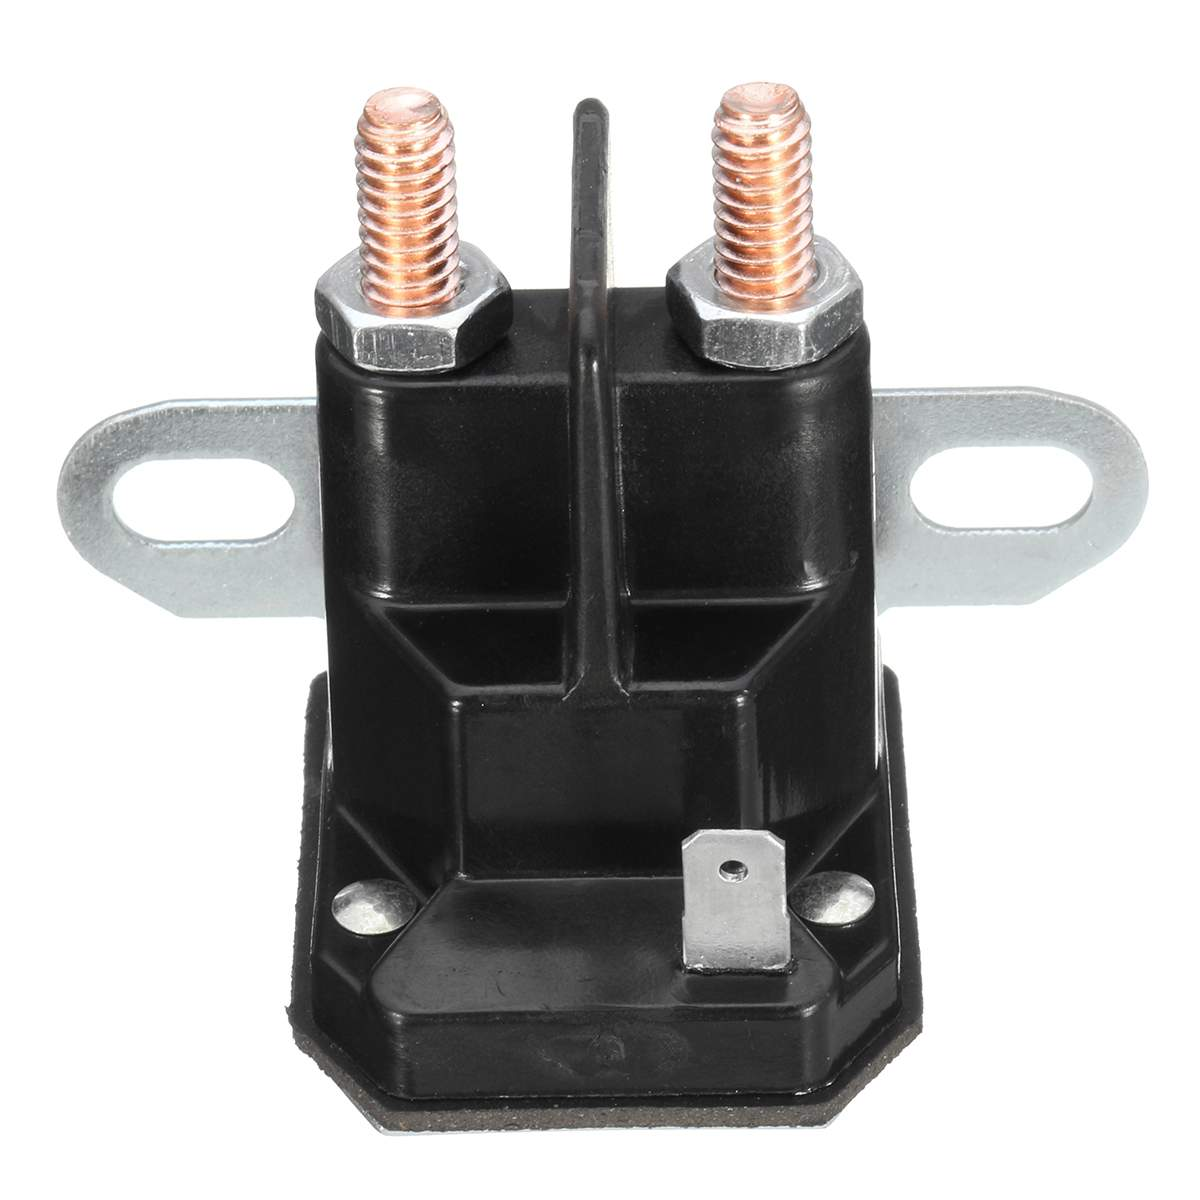 New 3 Pole Starter Solenoid Relay Switch Universal Stens